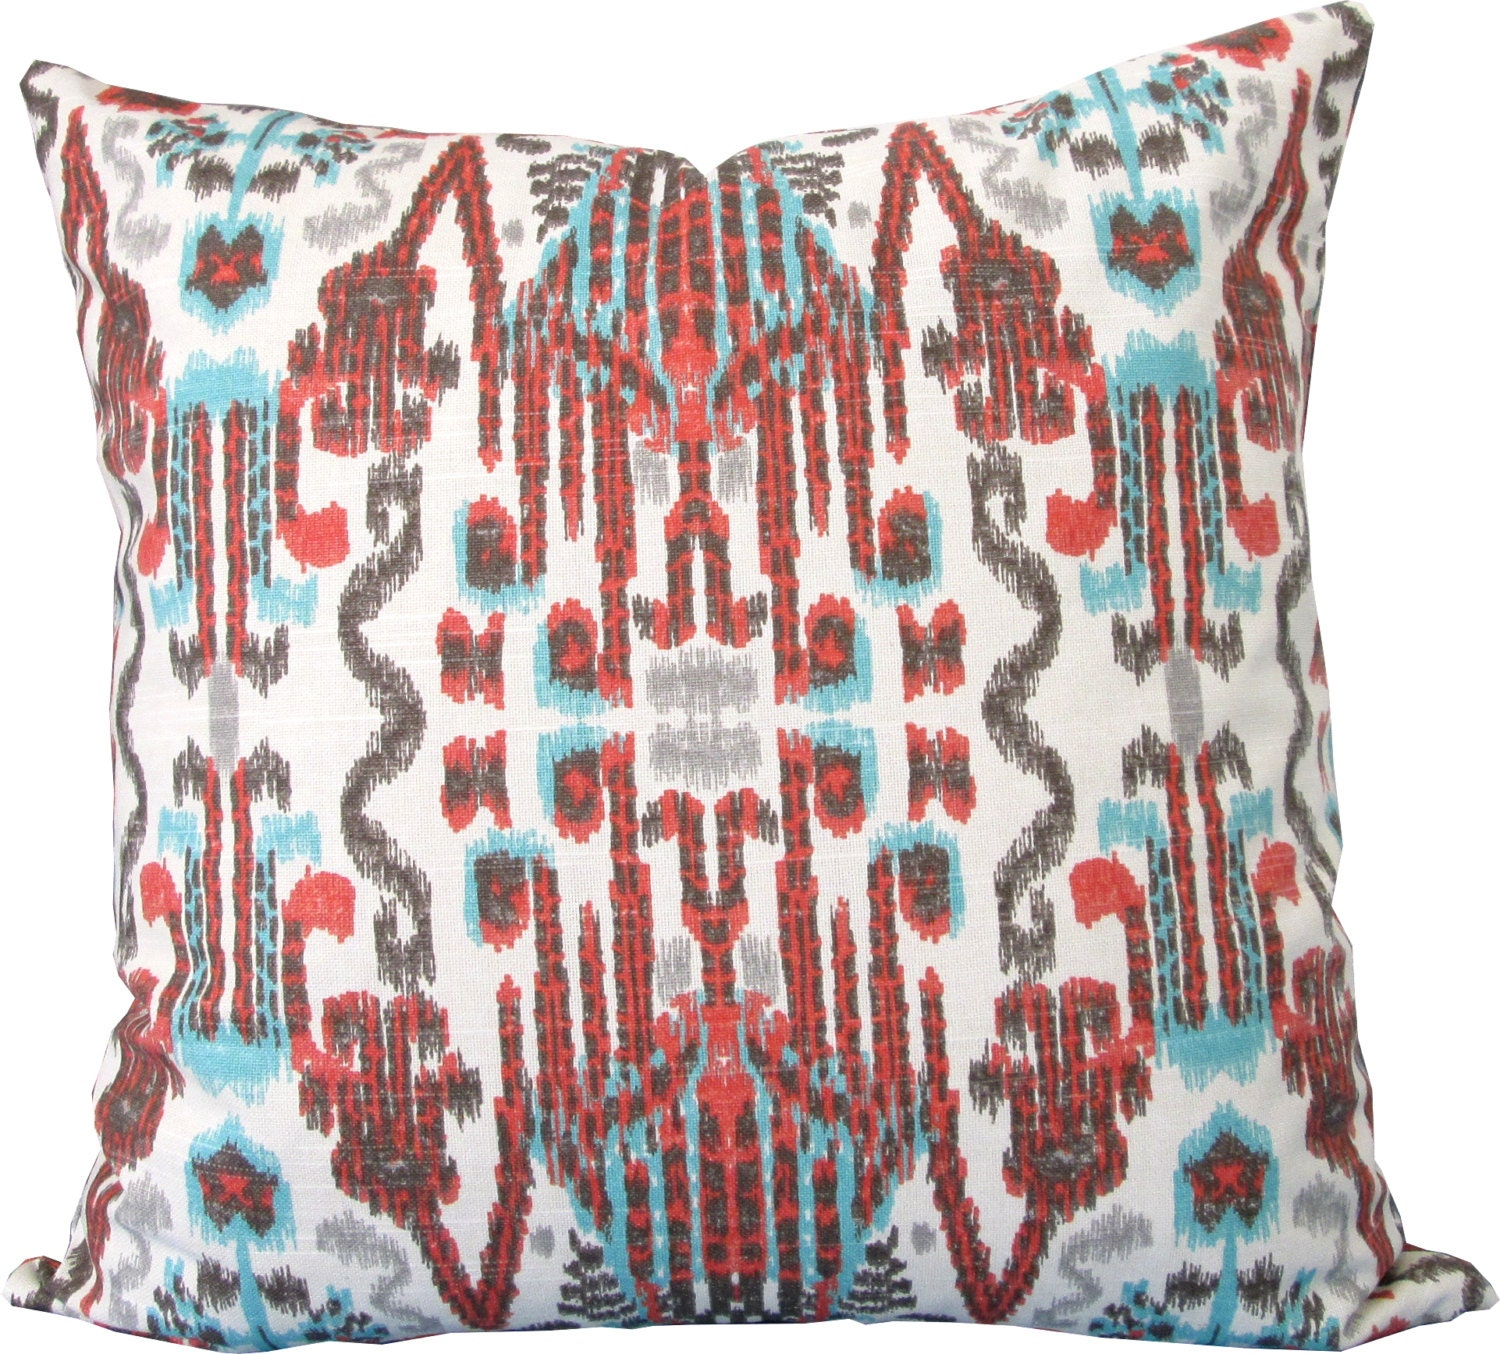 Blue Coral Throw Pillow : Decorative Pillow Cover-Coral and Blue Ikat-Accent Pillow-Sofa